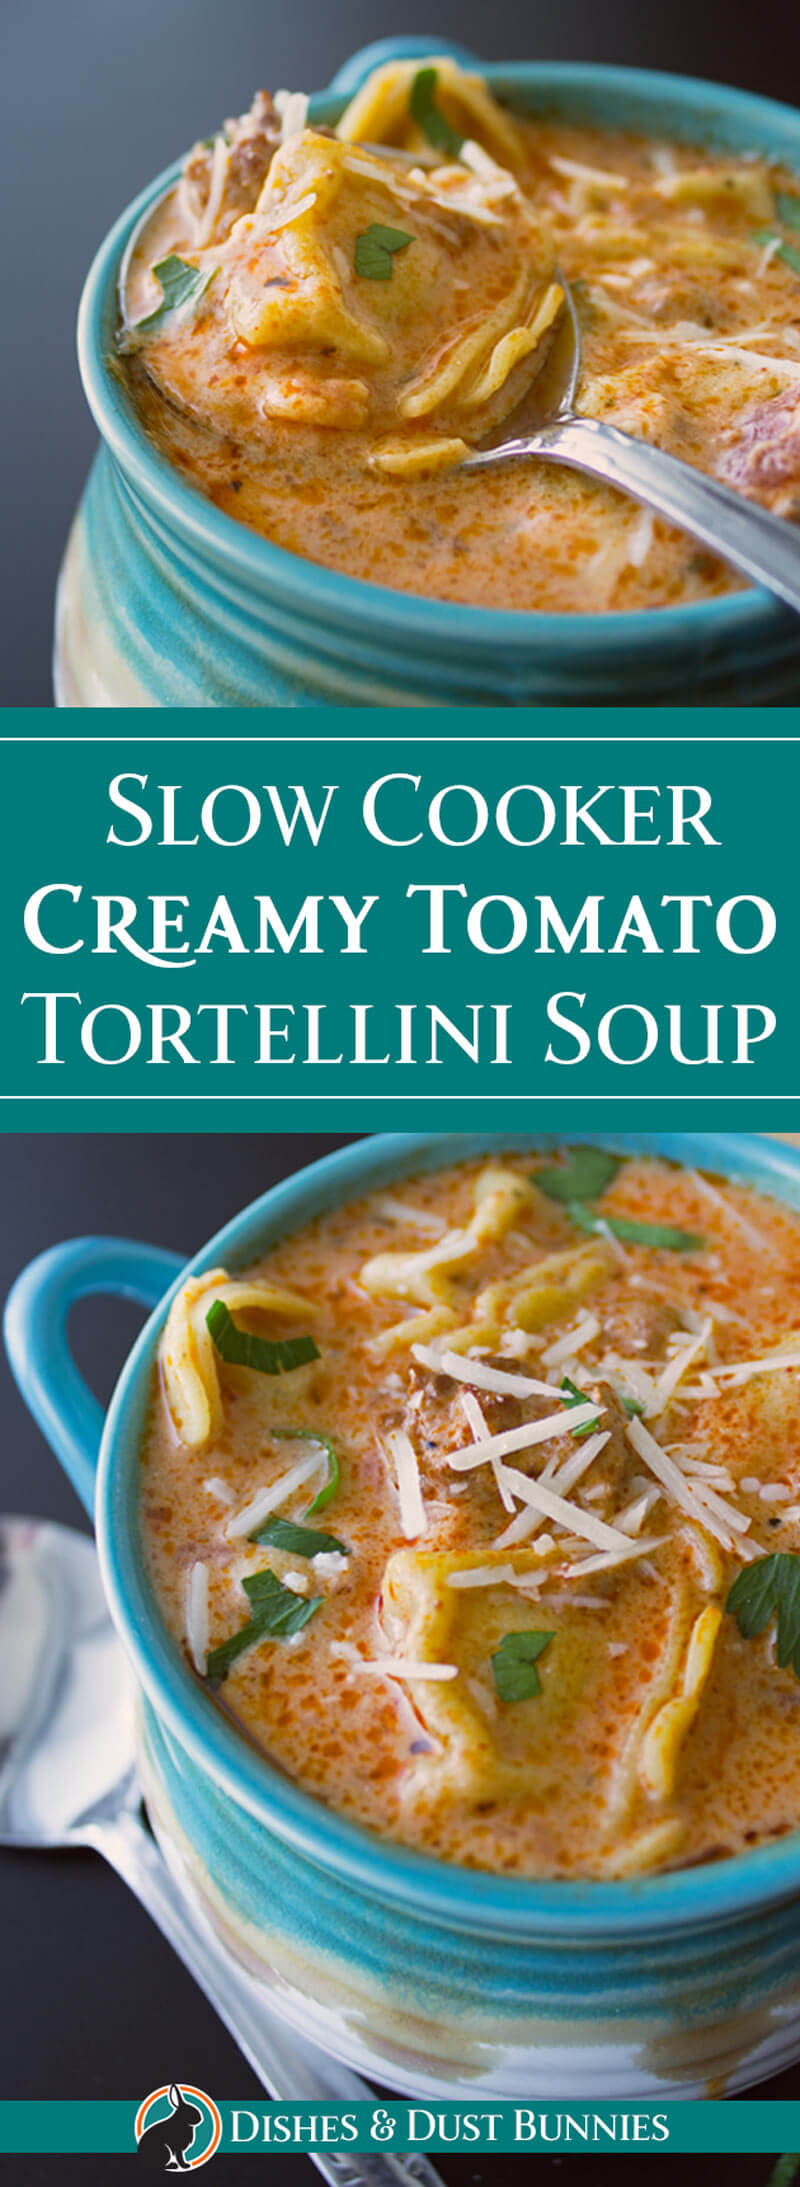 Slow Cooker Creamy Tomato Tortellini Soup from dishesanddustbunnies.com